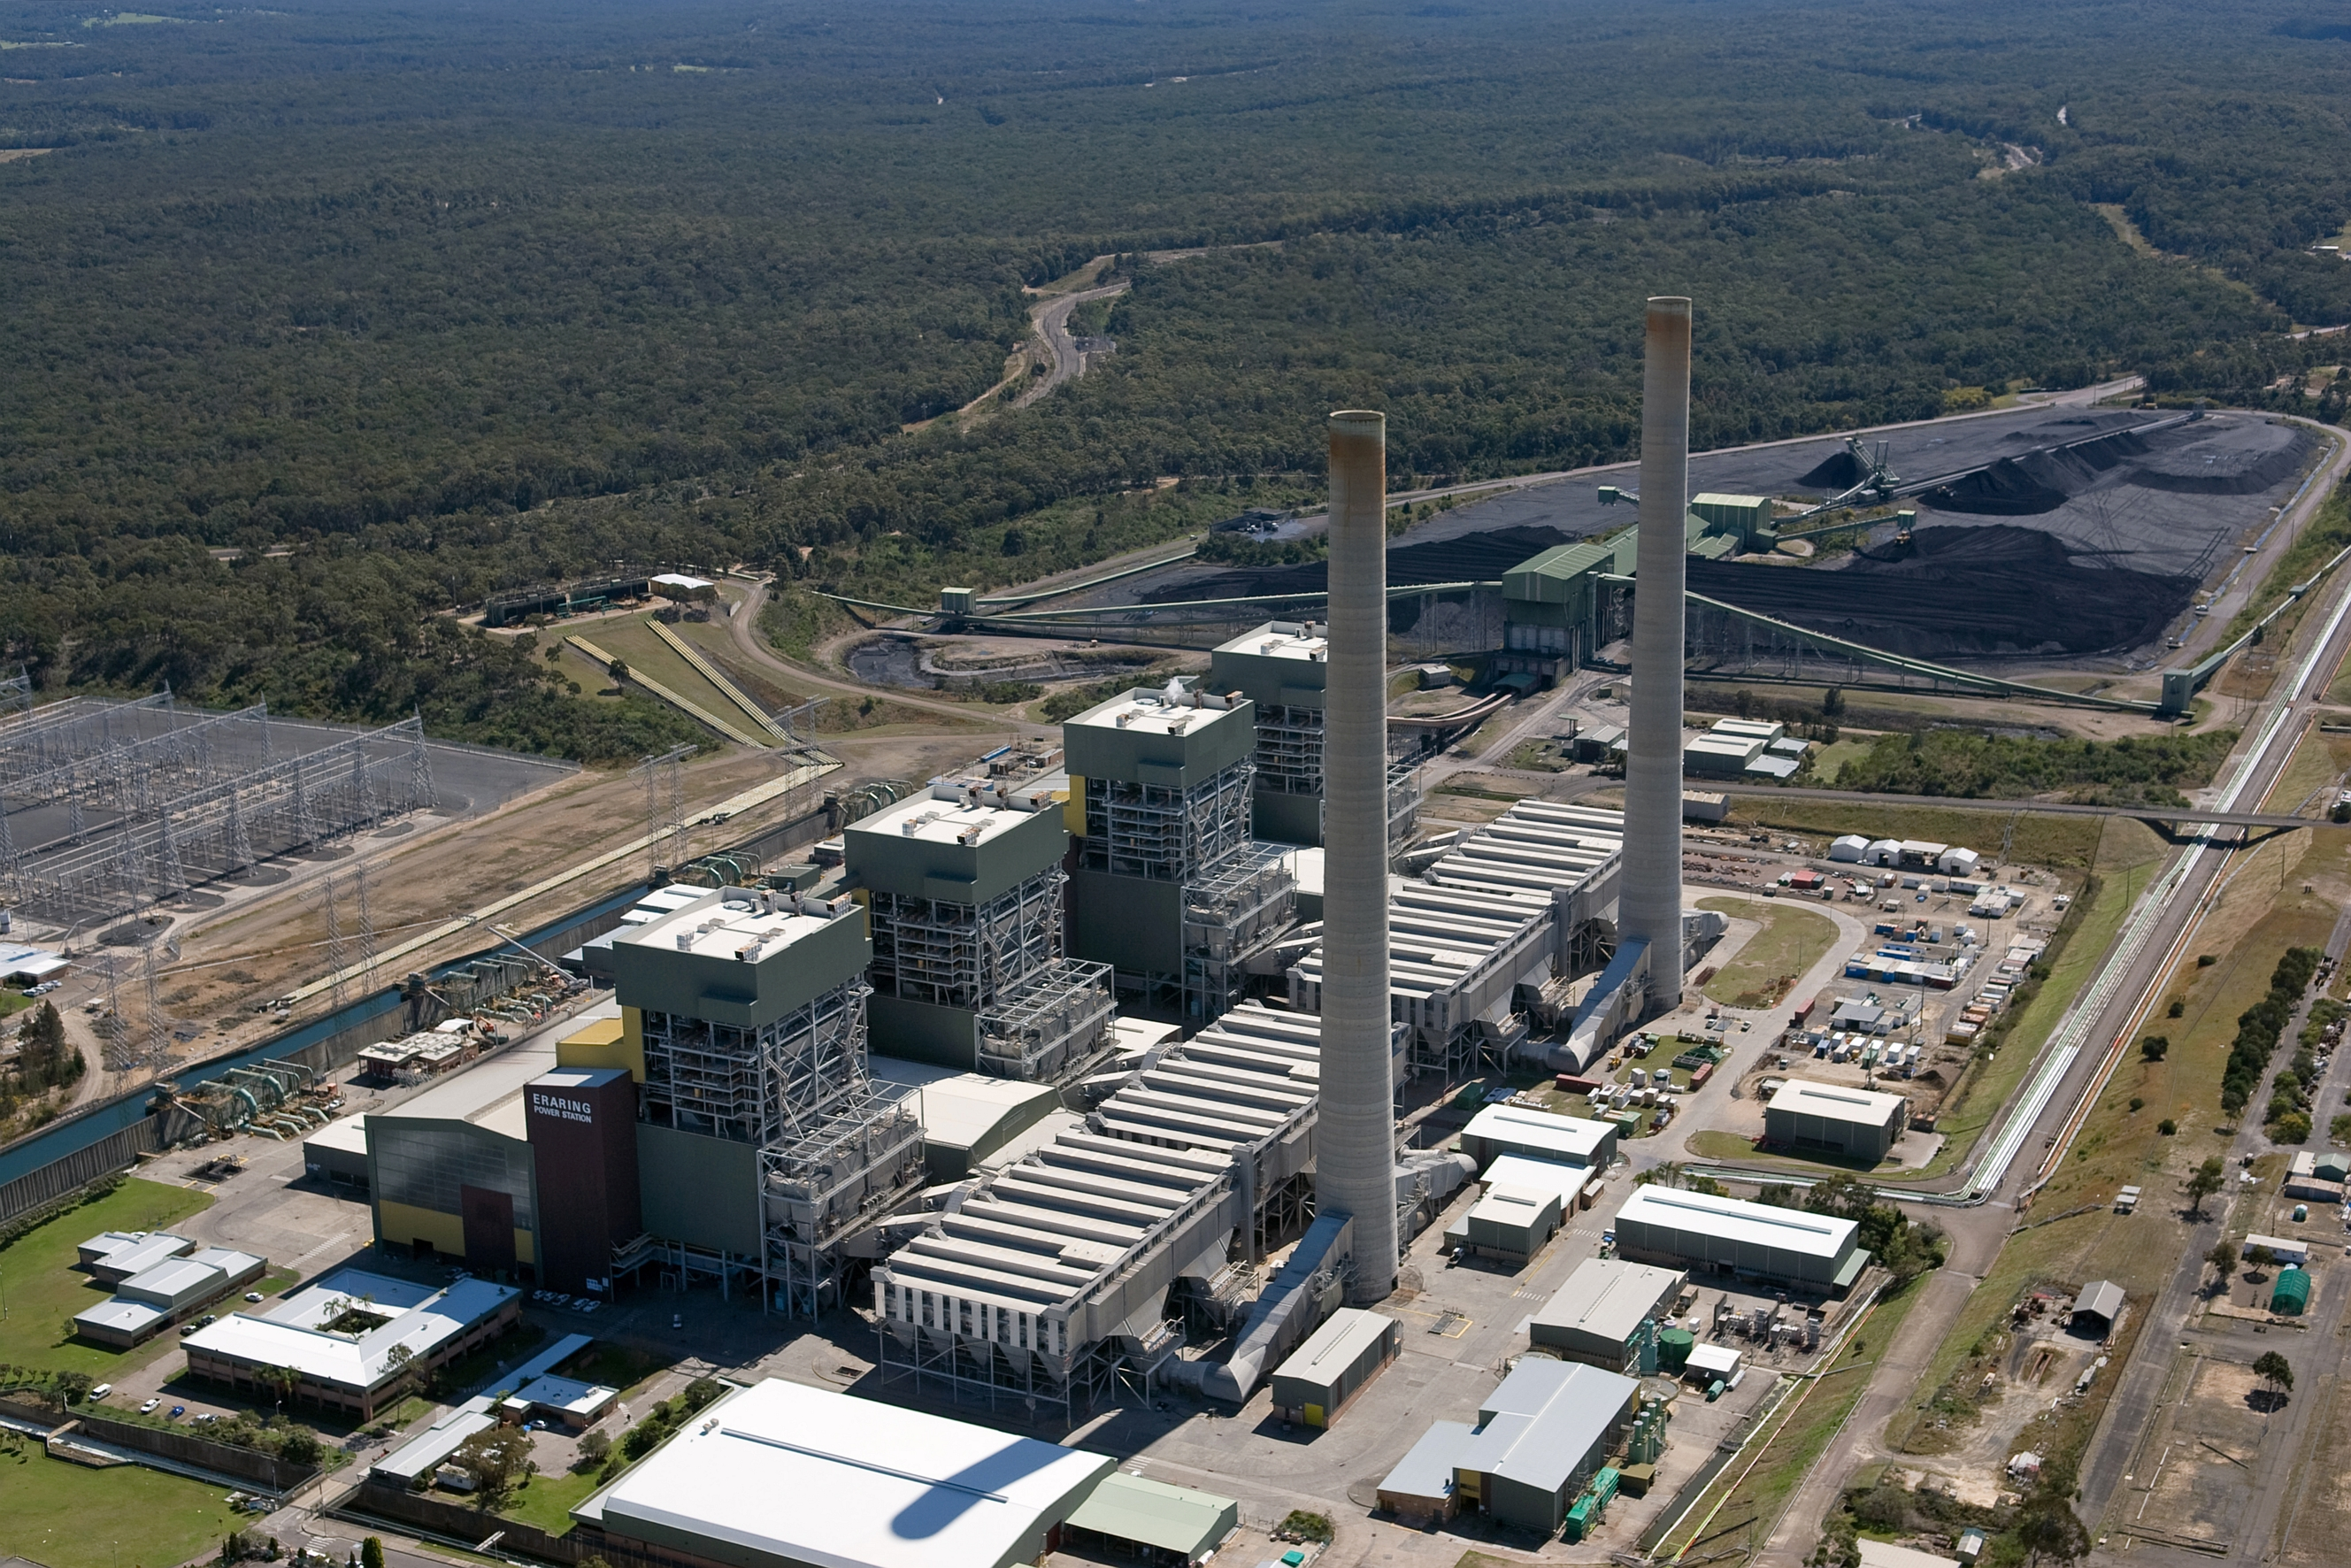 Aerial photograph of Eraring coal-fired power station in Newcastle.